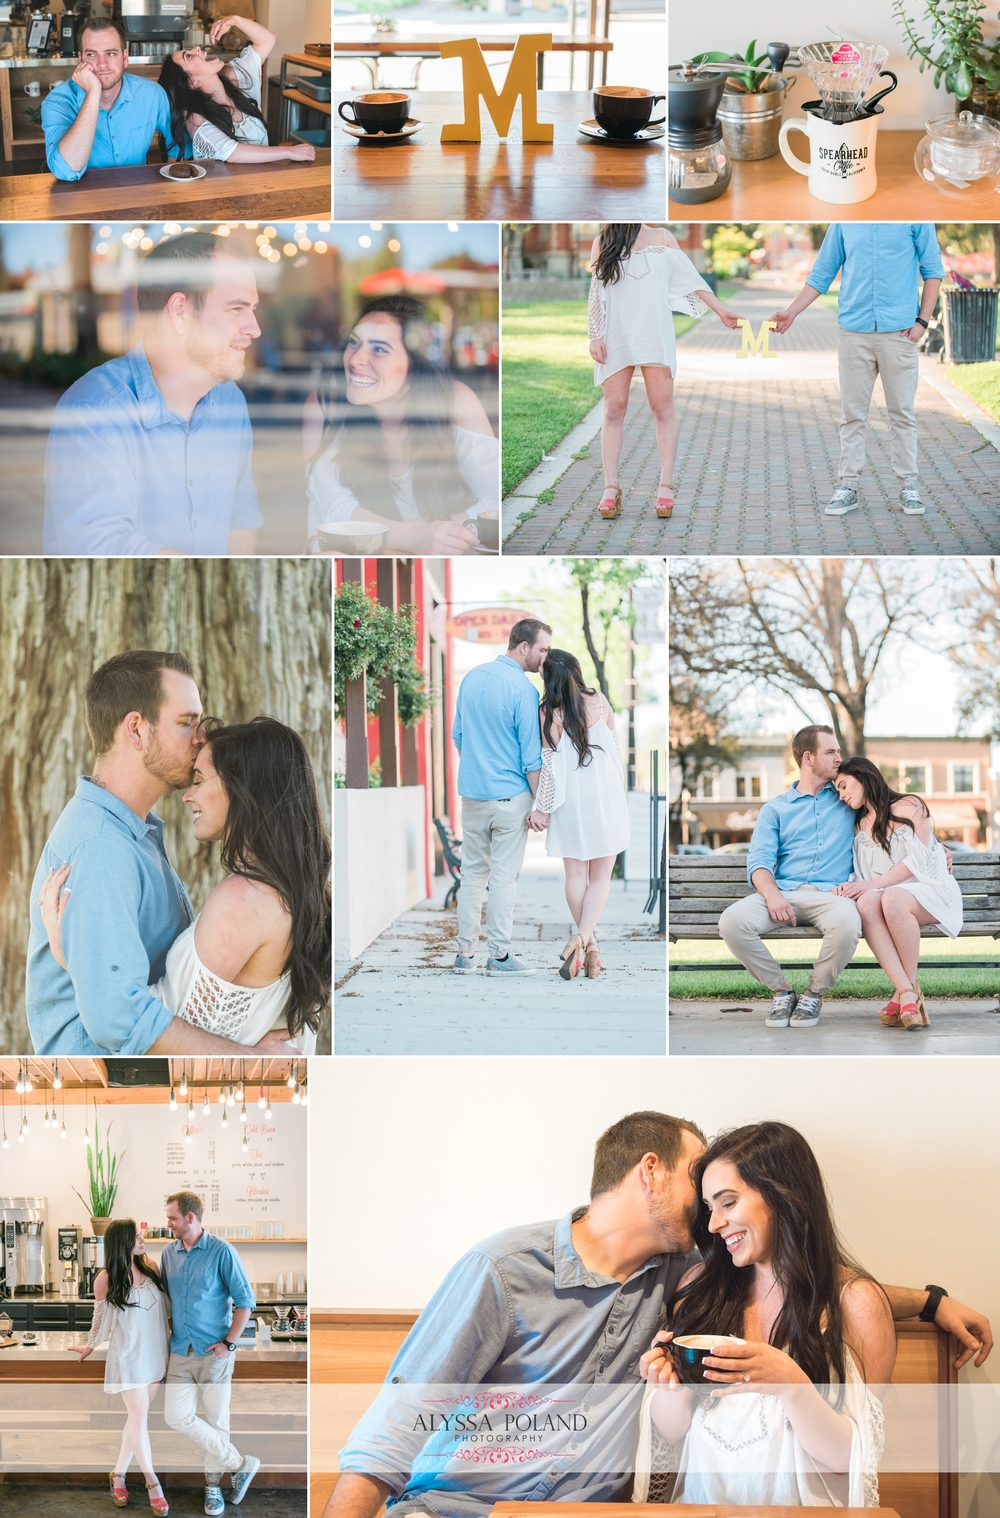 Lifestyle Engagement Photography